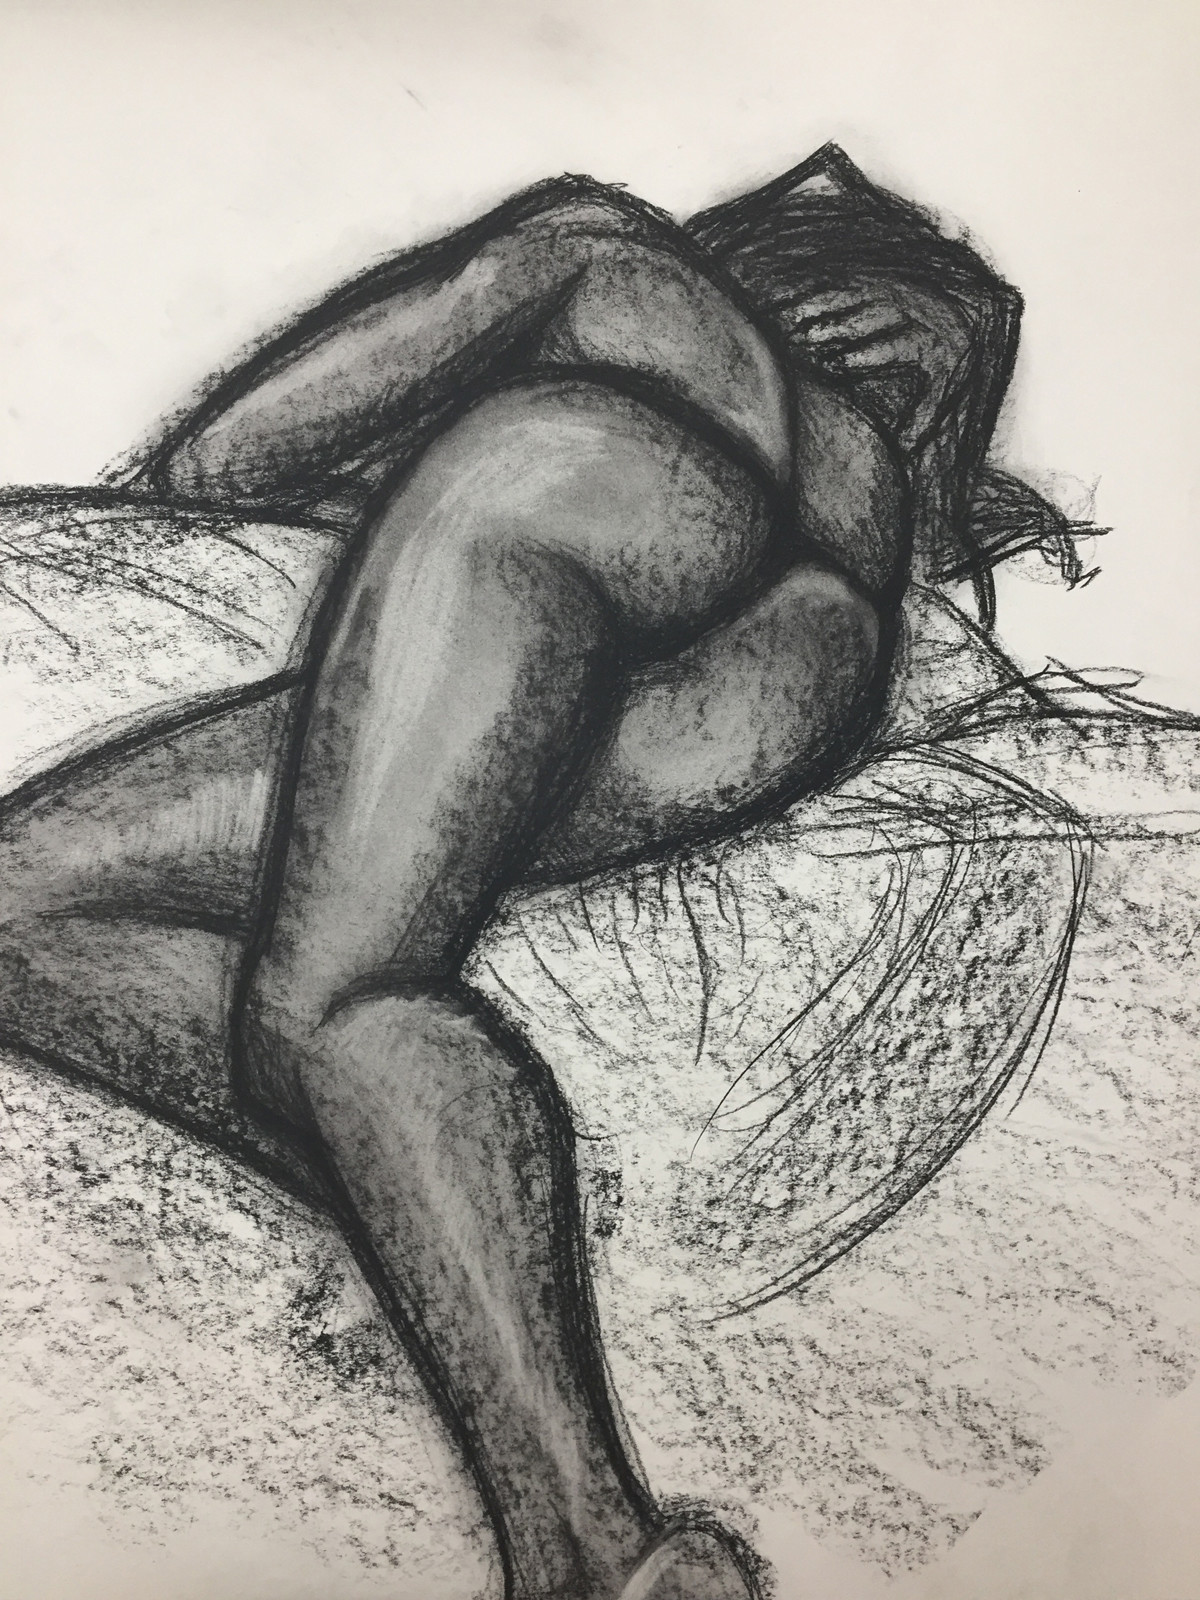 Pressed charcoal